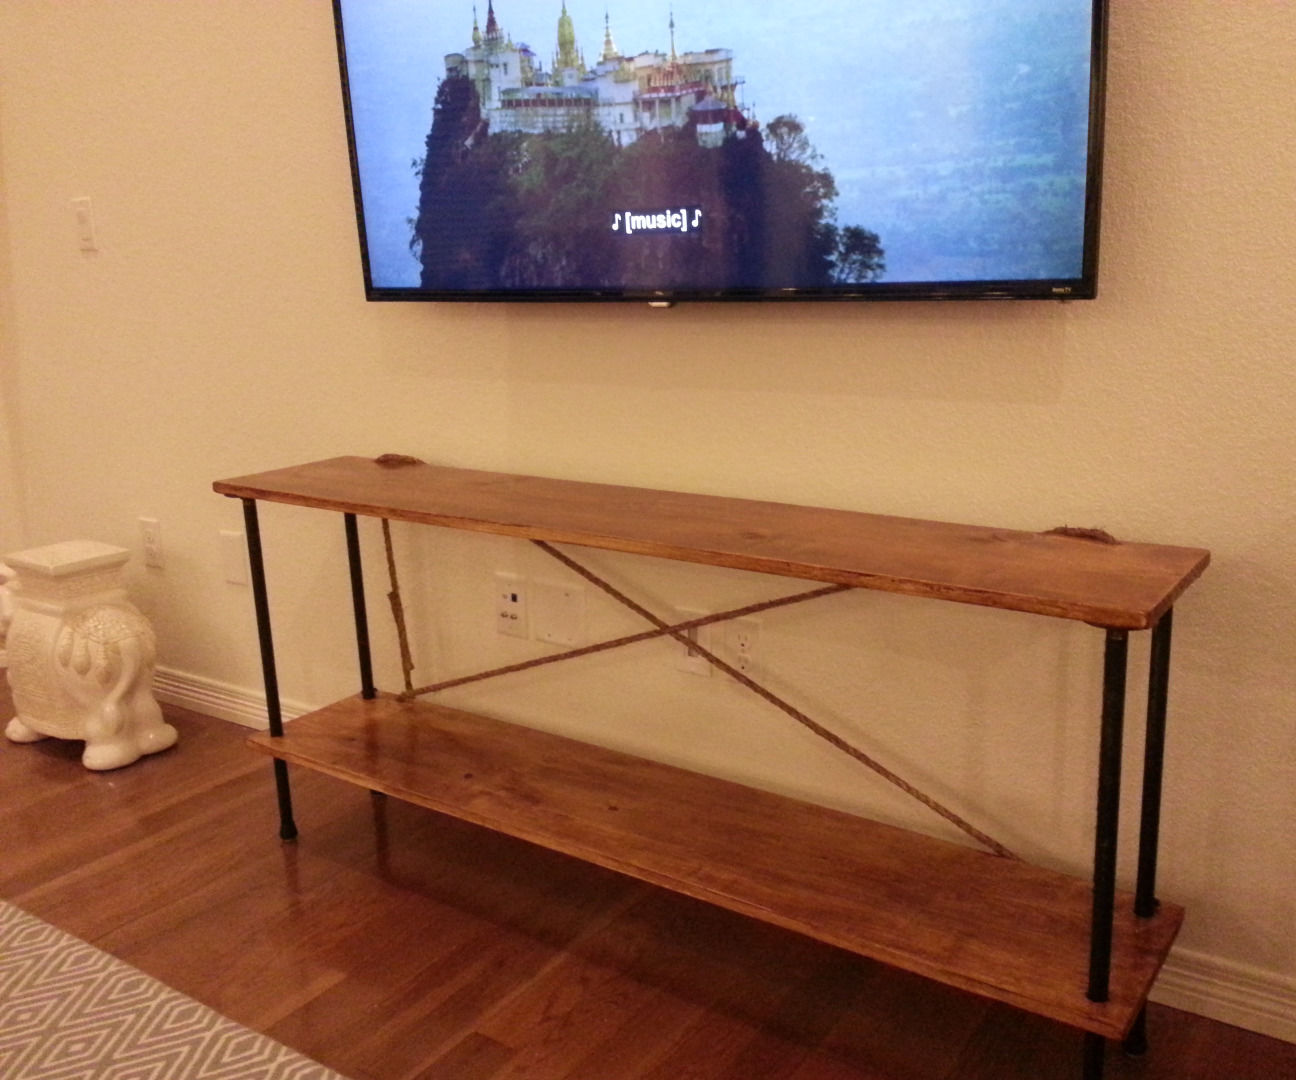 Industrial console table, rope/wood/steel, $100 in parts.